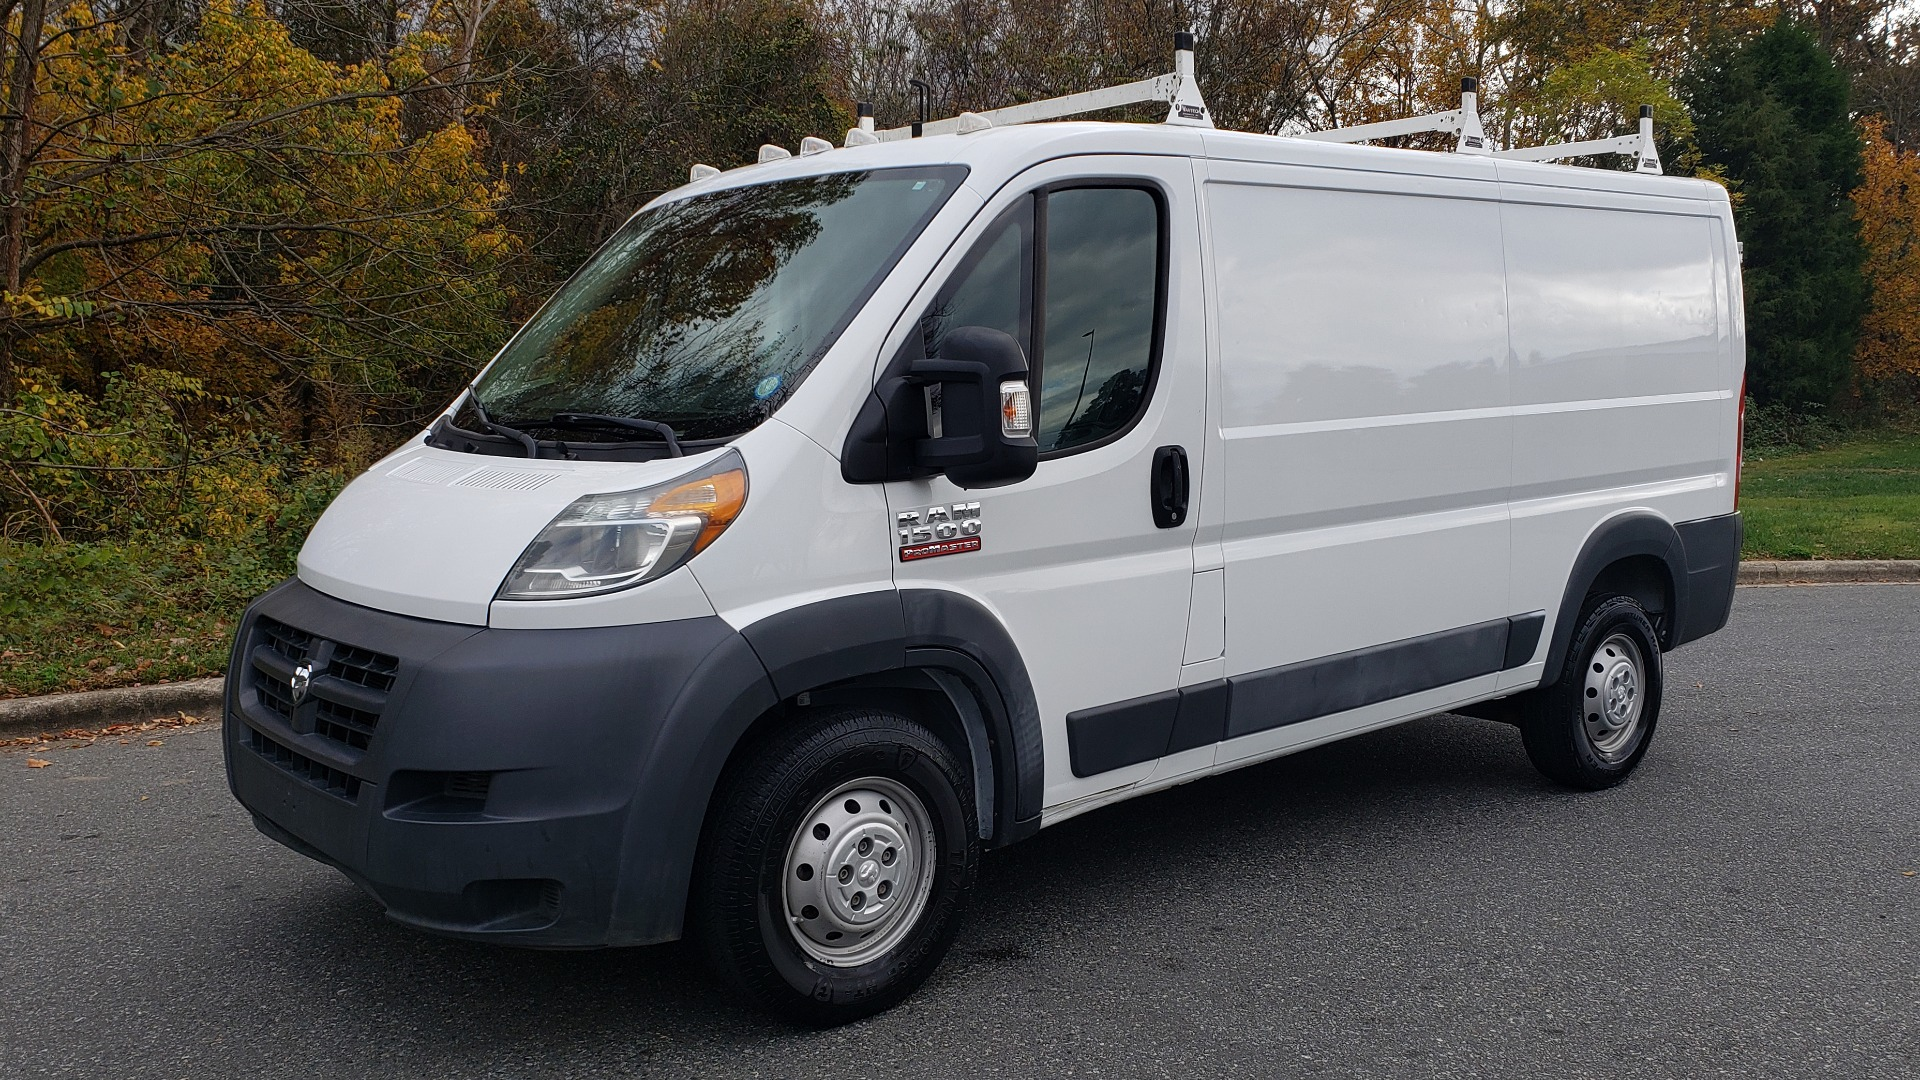 Used 2015 Ram PROMASTER CARGO VAN 136-INCH WB / LOW ROOF / LADDER RACK / INSIDE RACKS for sale $16,995 at Formula Imports in Charlotte NC 28227 1